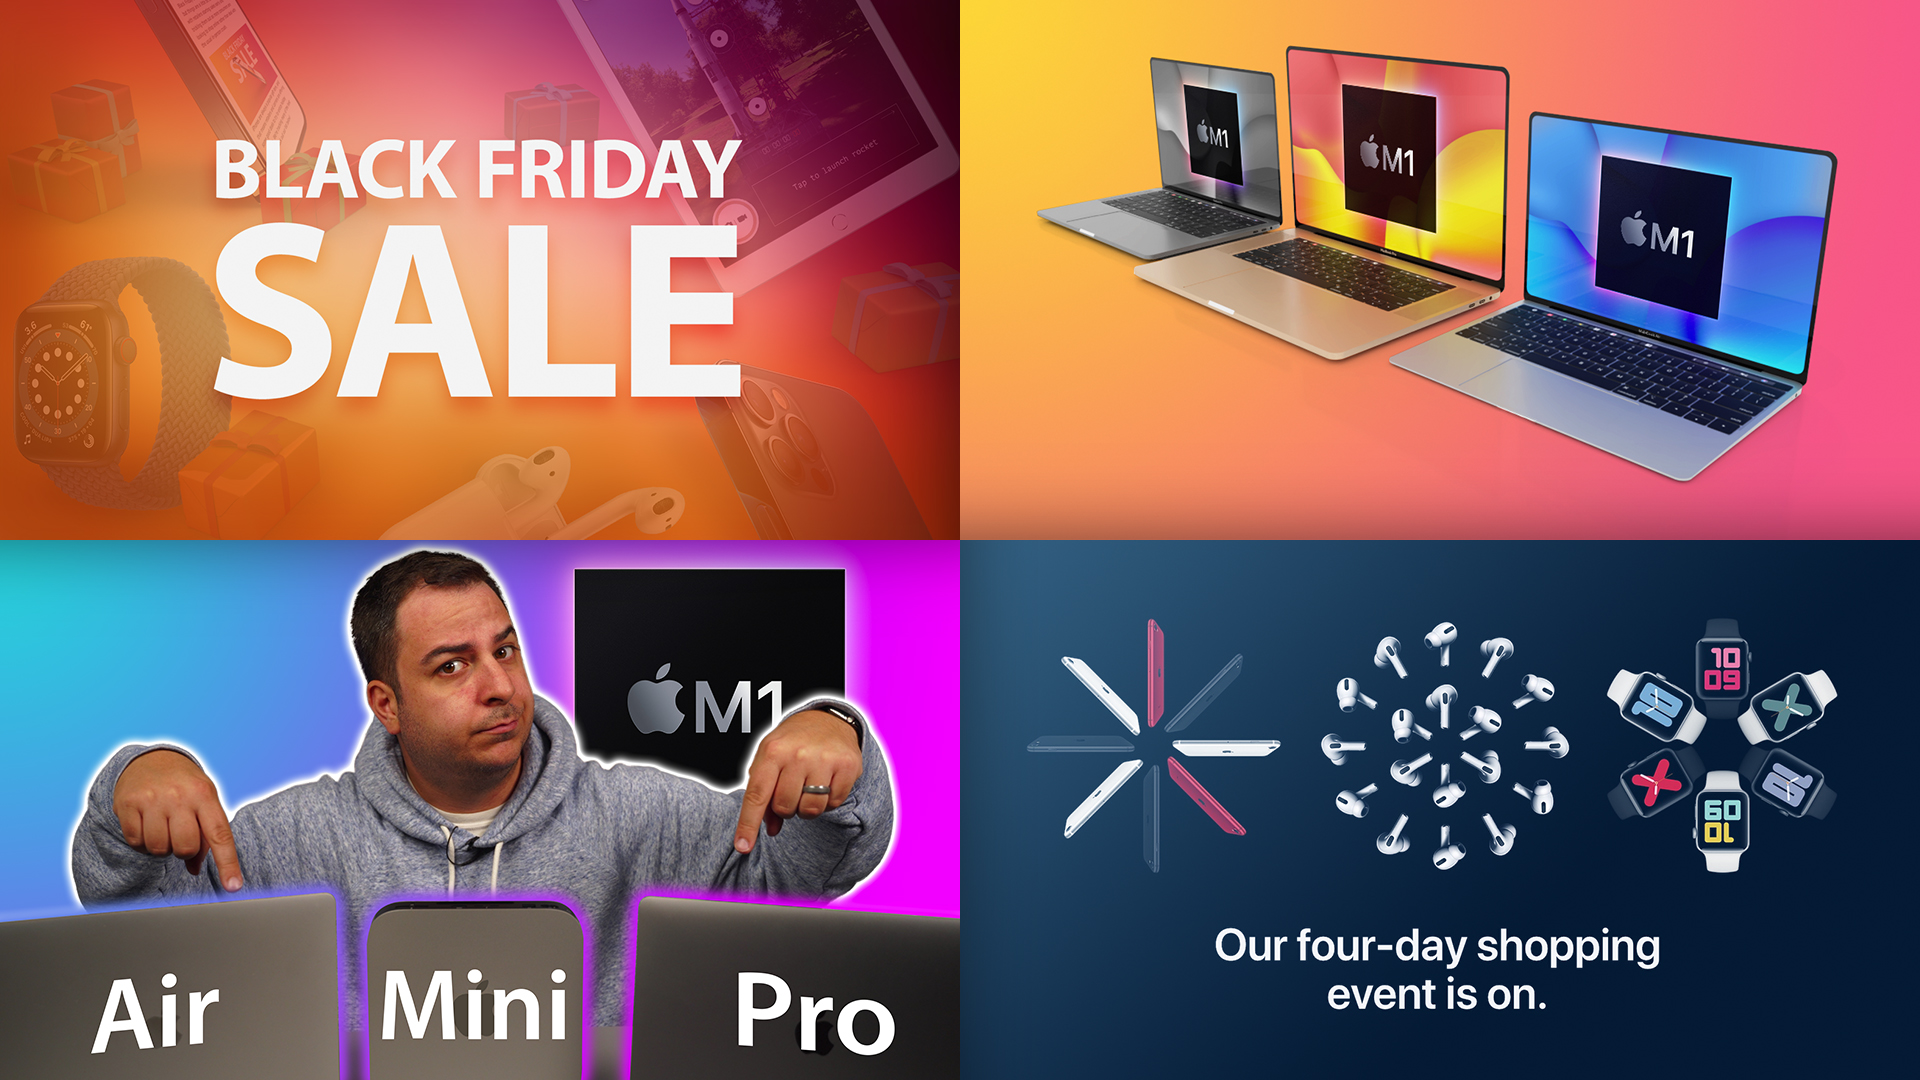 Top Stories: Black Friday Deals, Redesigned MacBooks, Hands-On With Apple's M1 Macs